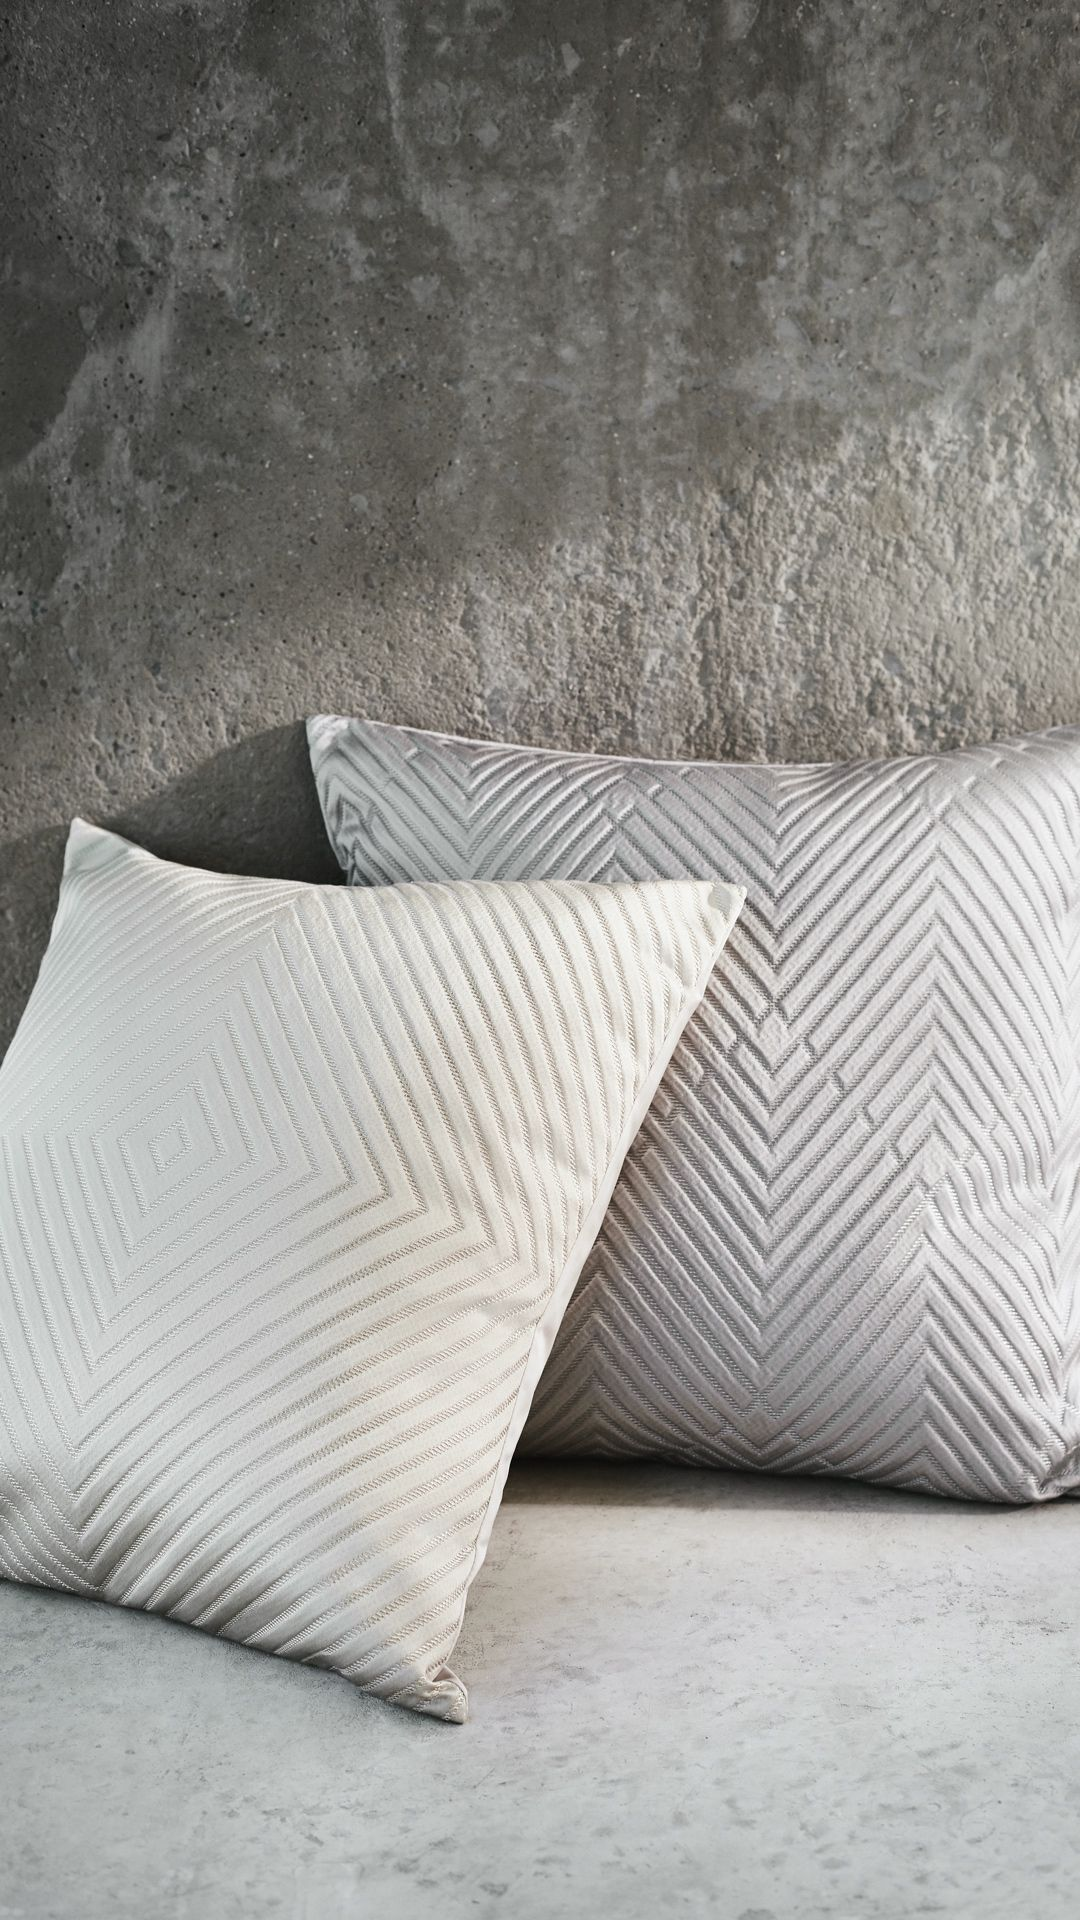 H M Home These Dreamy Diamond Cushions Bring A Touch Of Elegance